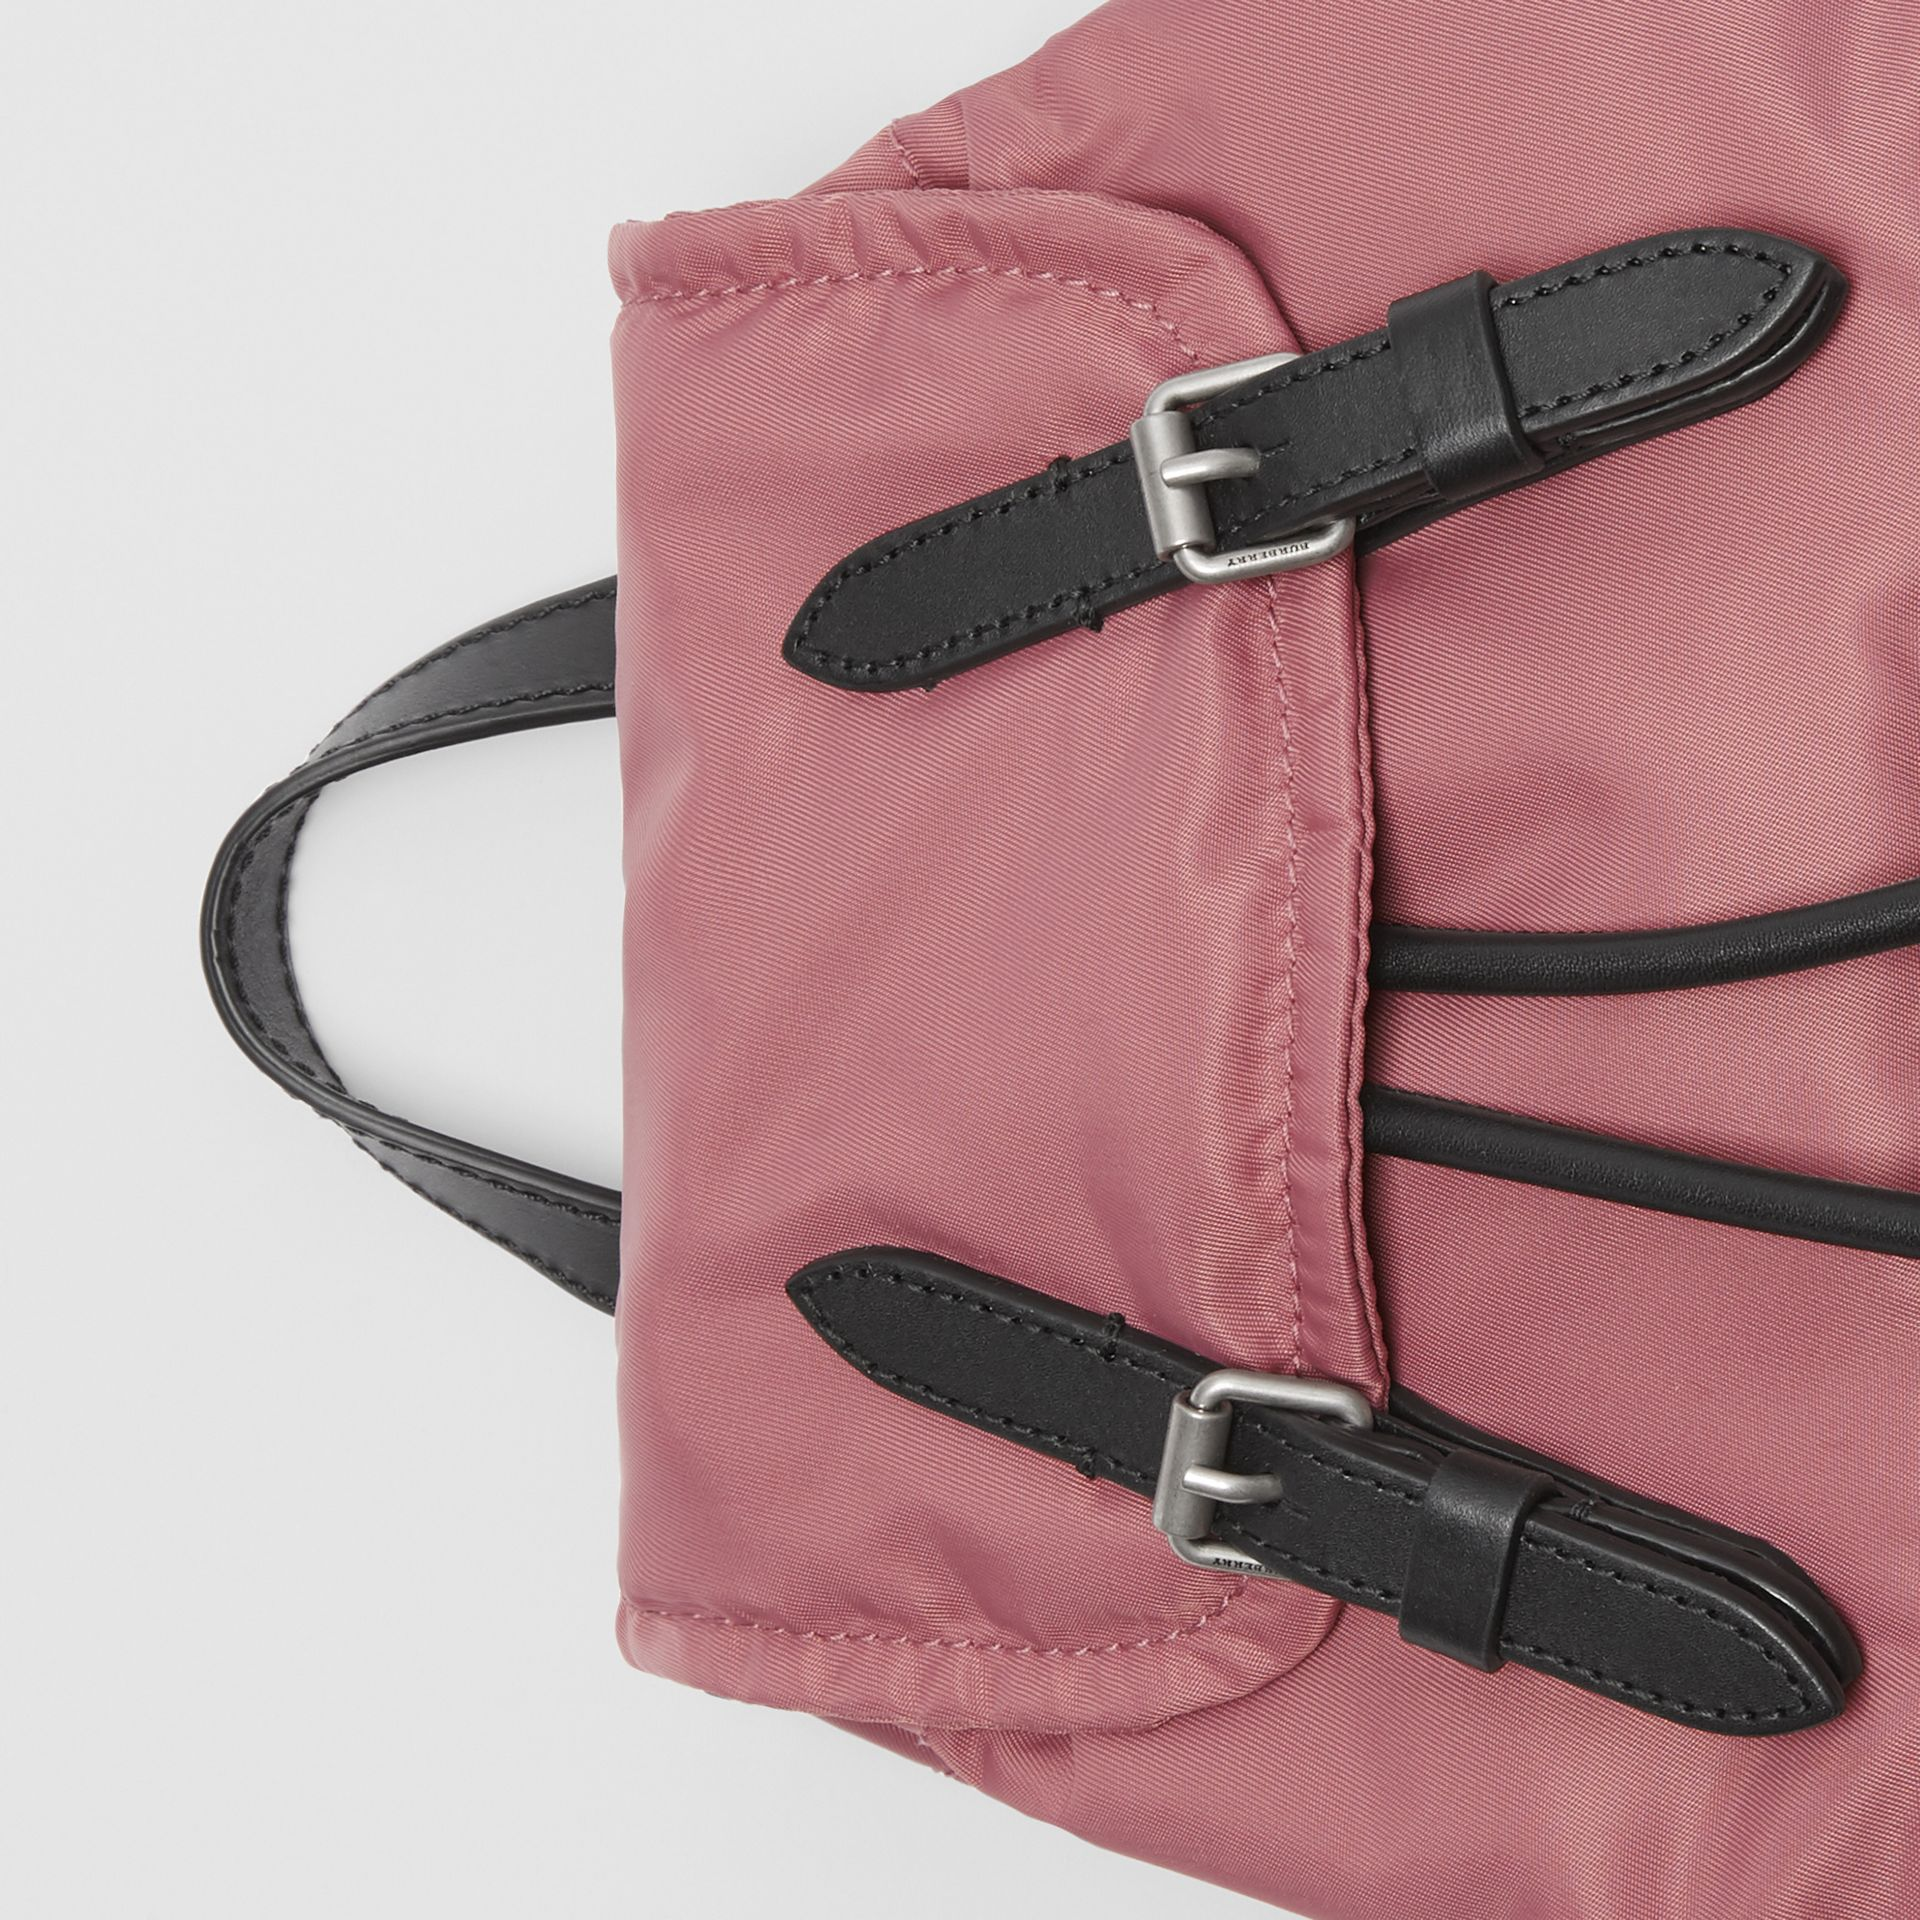 The Small Crossbody Rucksack in Puffer Nylon in Mauve Pink - Women | Burberry - gallery image 1